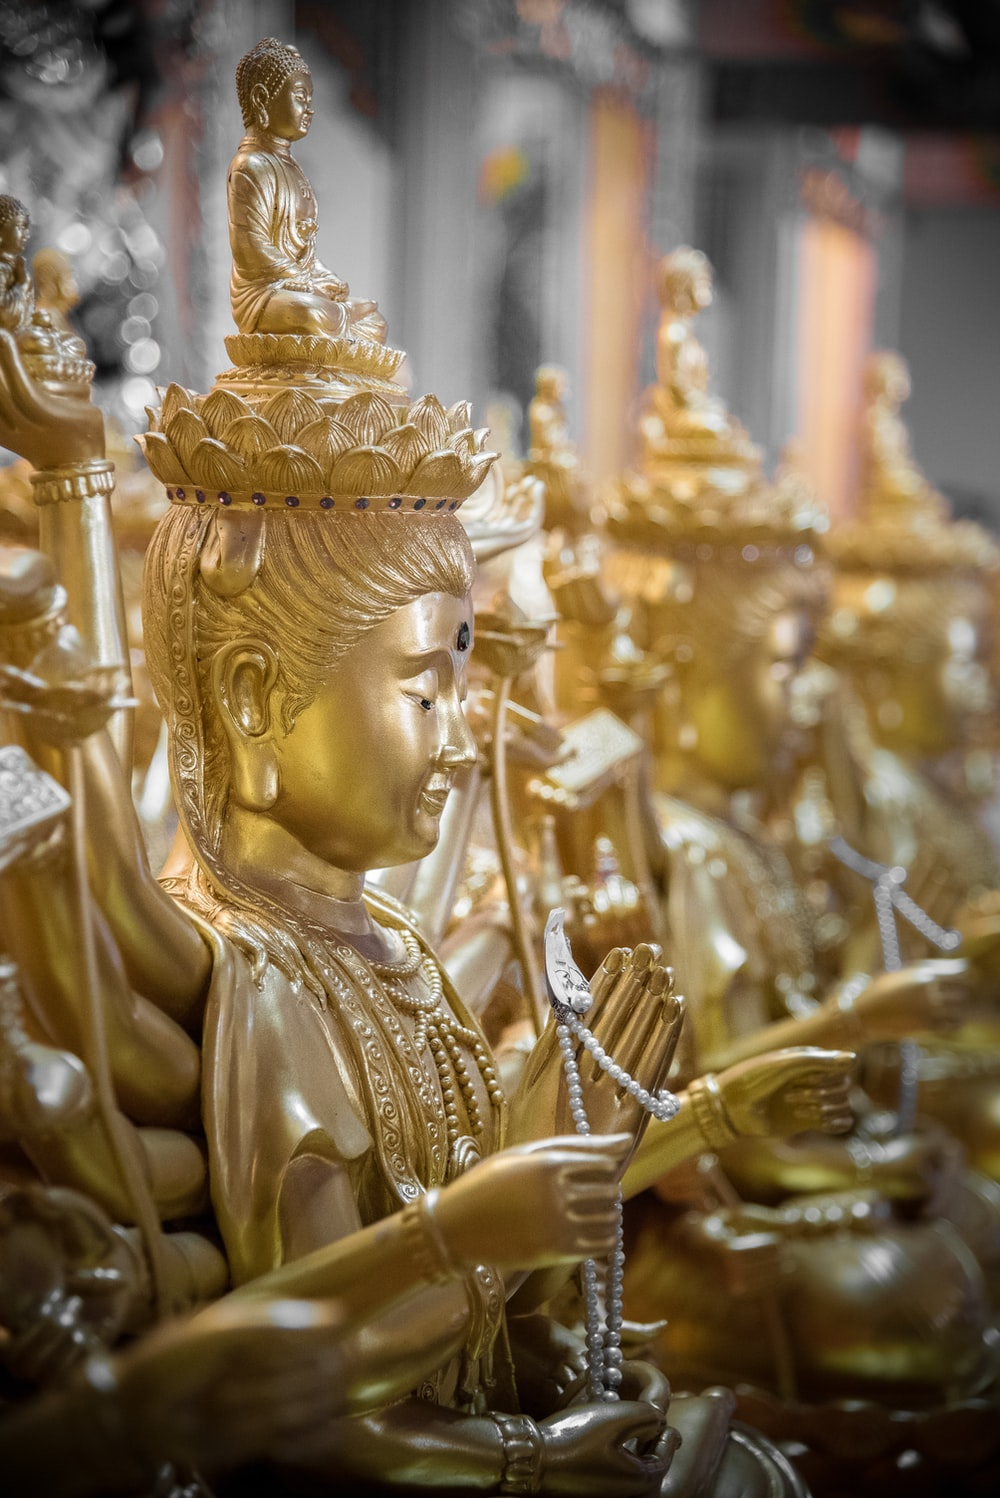 several golden buddha figurines lining up